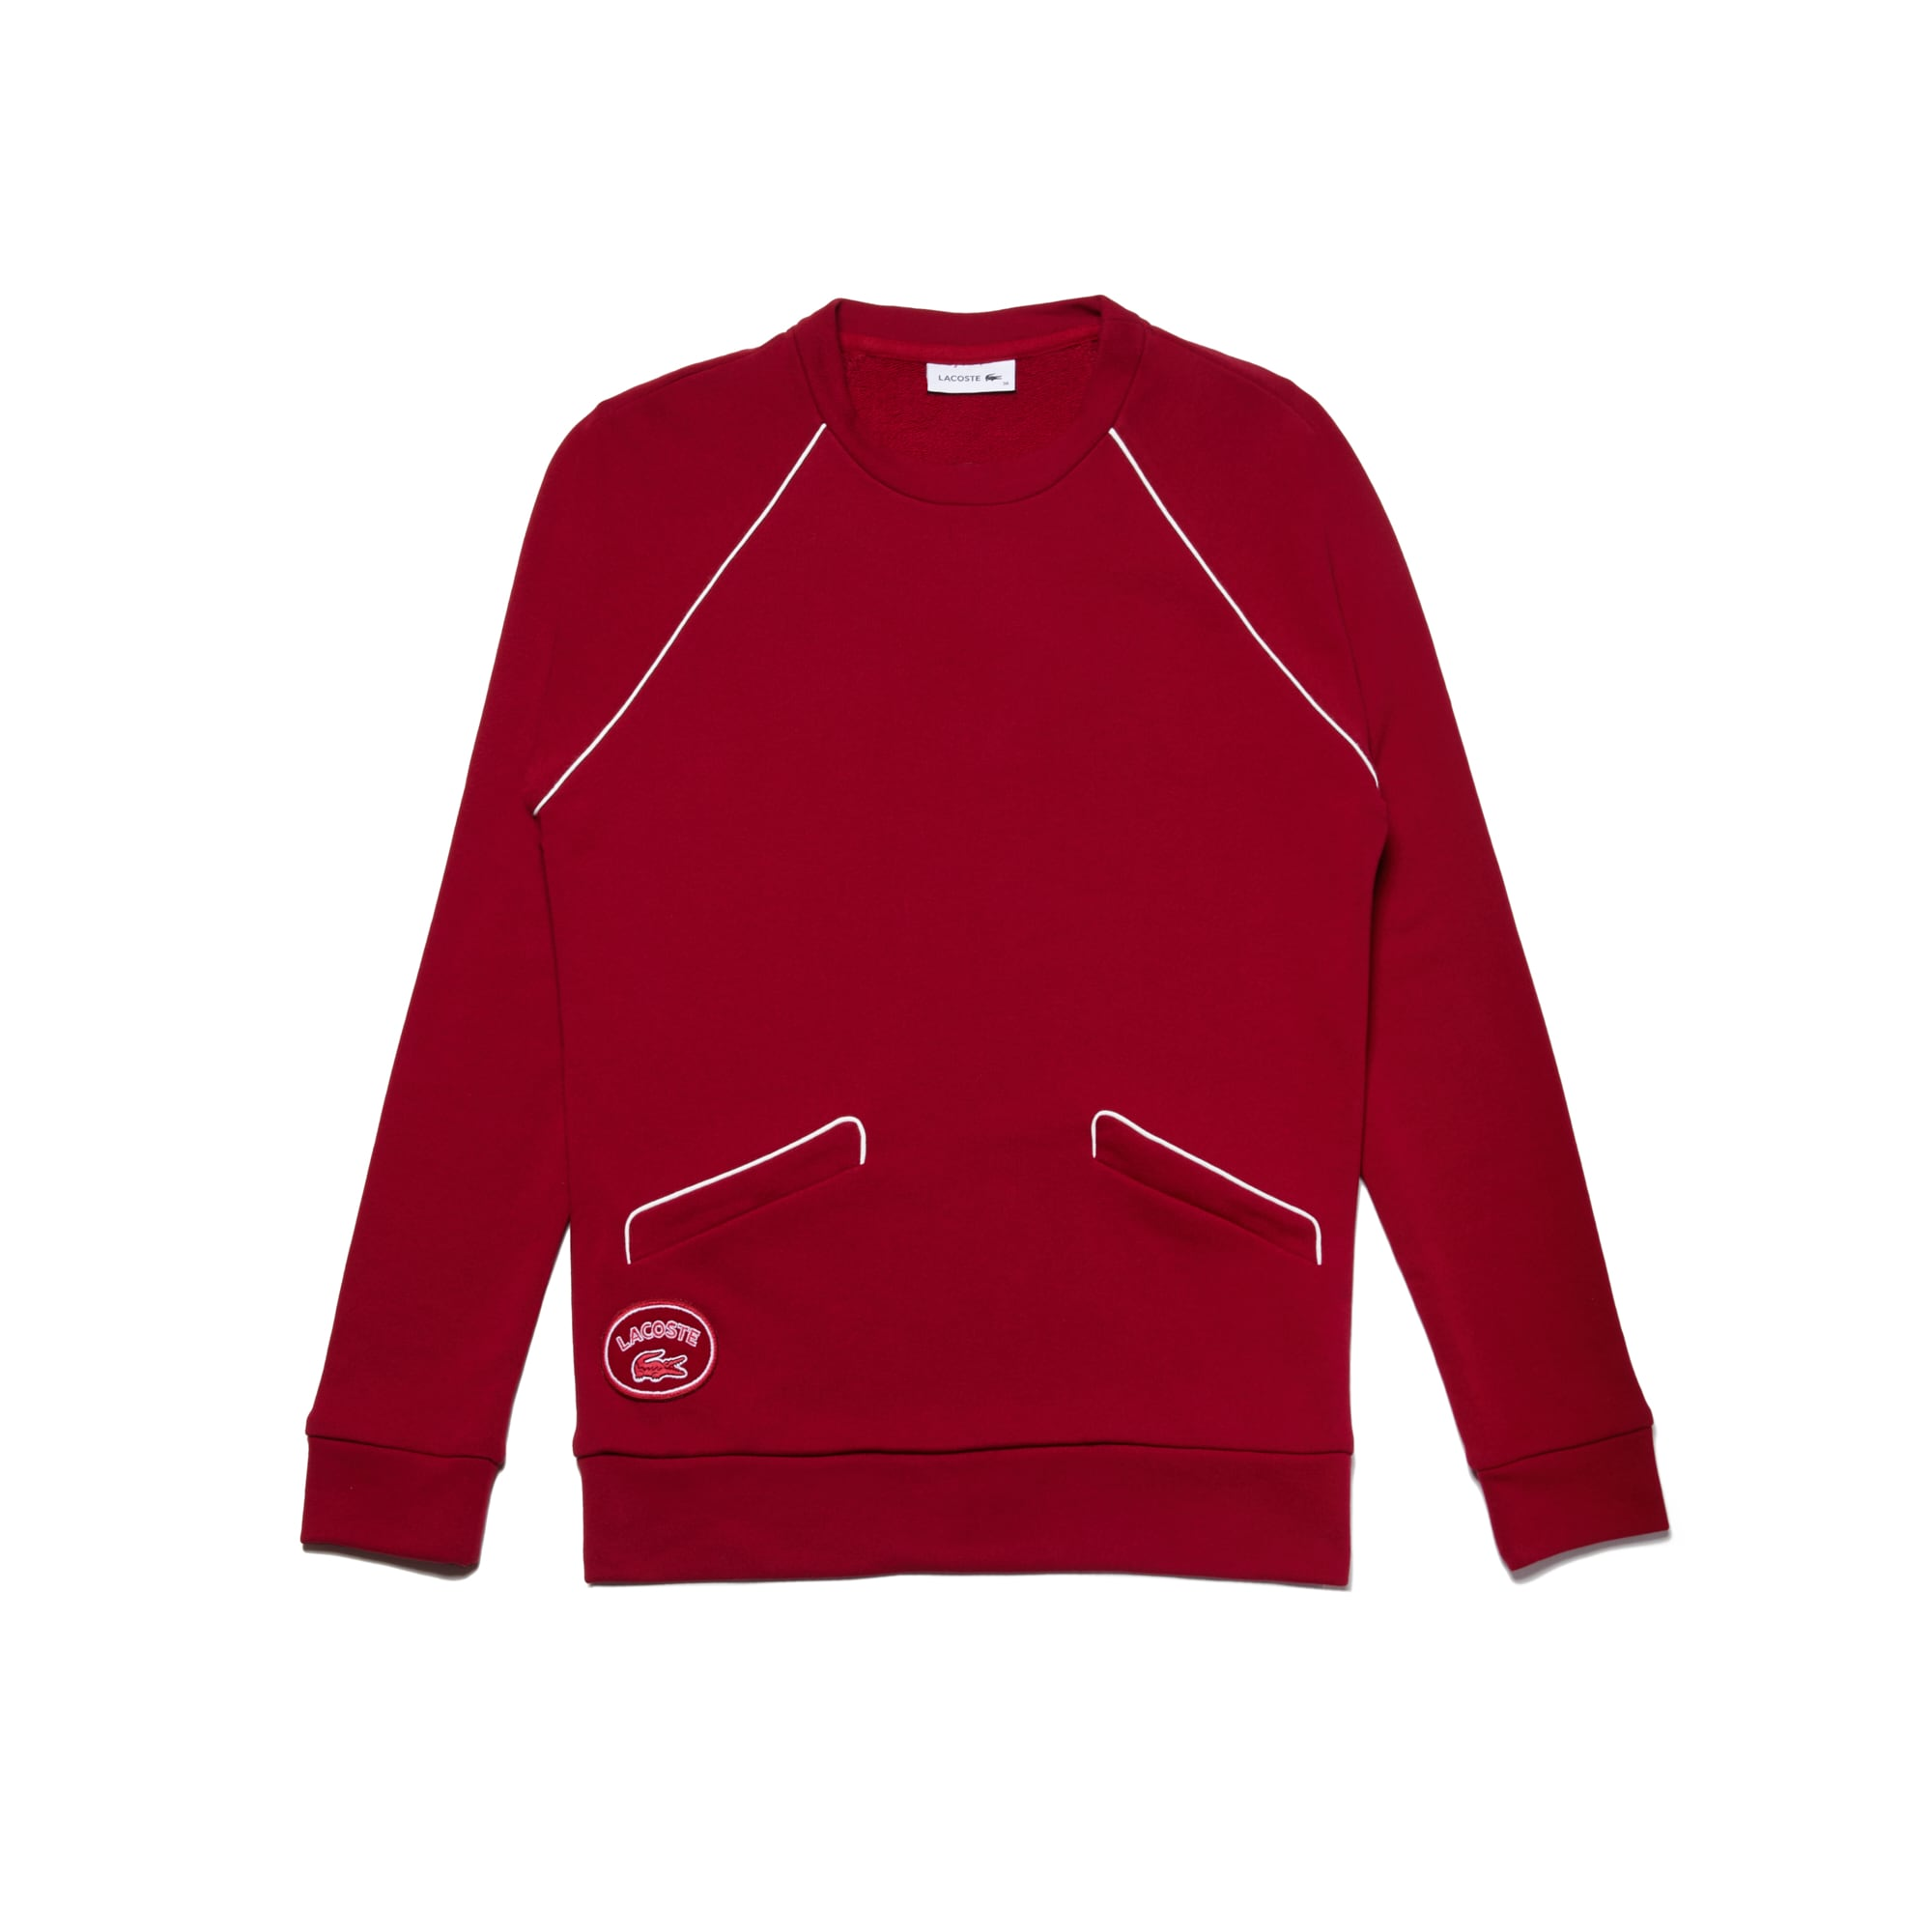 Women's Crew Neck Piped Crepe Fleece Sweatshirt